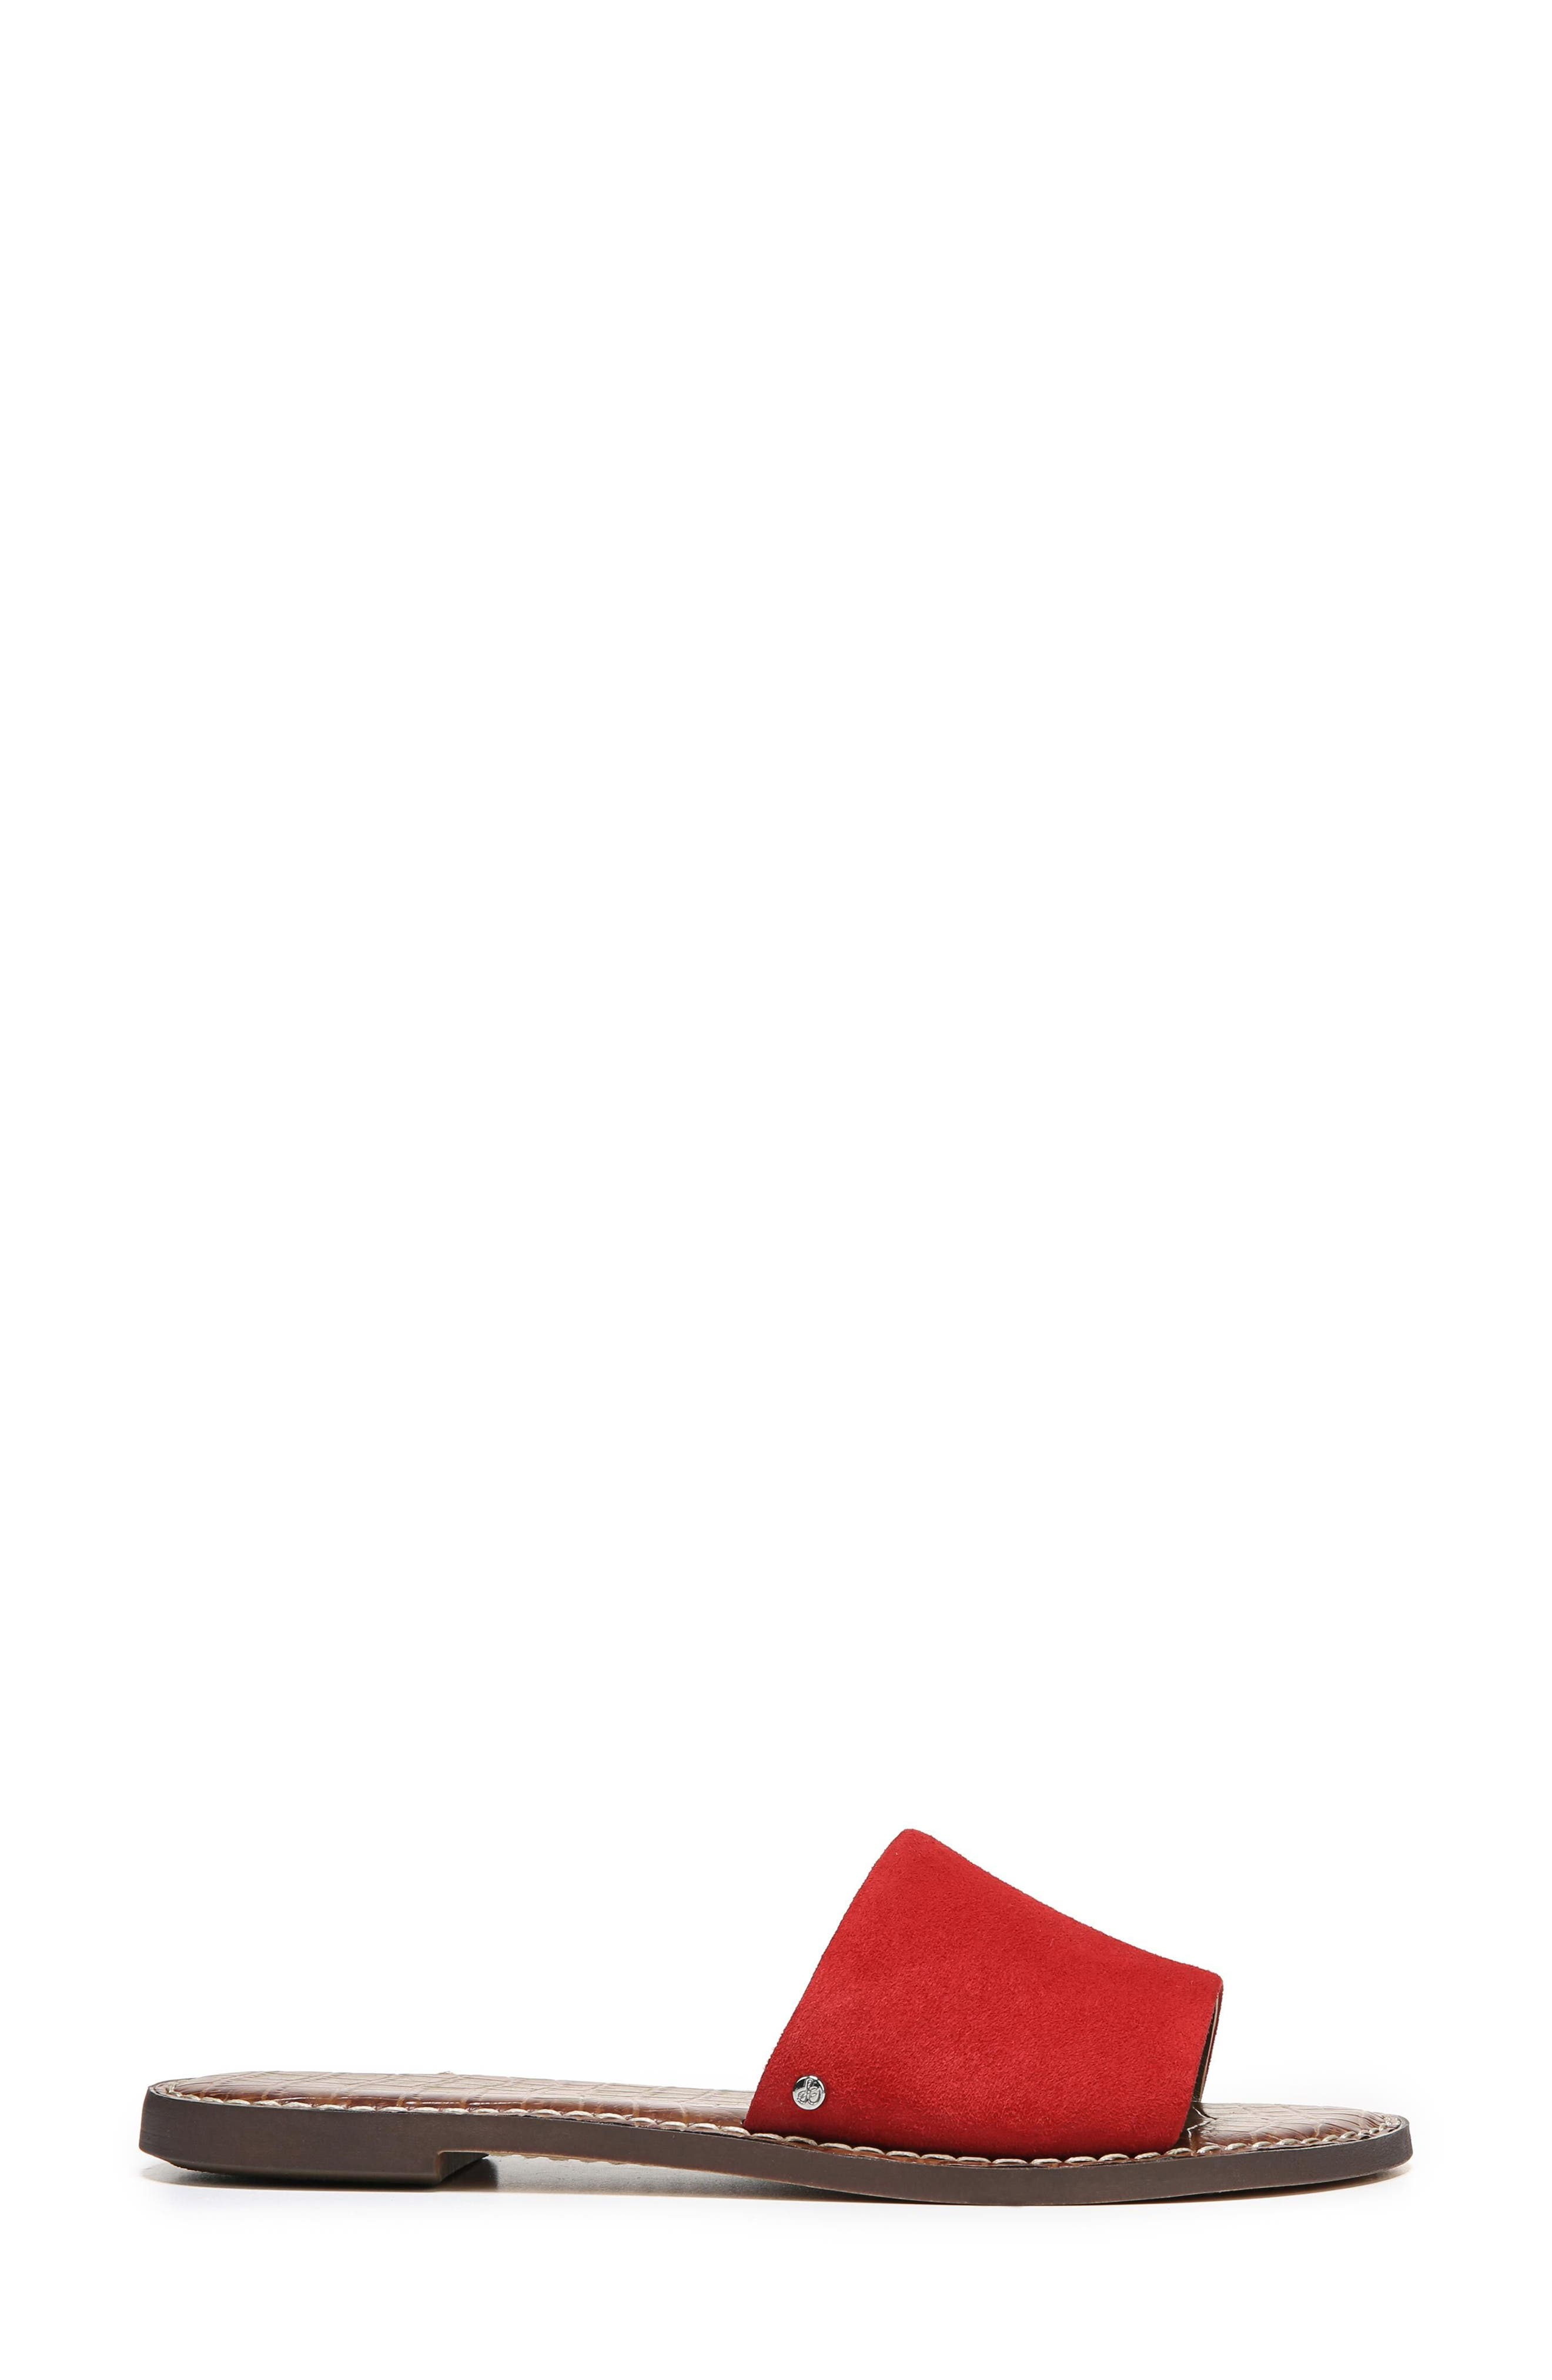 Gio Slide Sandal,                             Alternate thumbnail 3, color,                             Red Suede